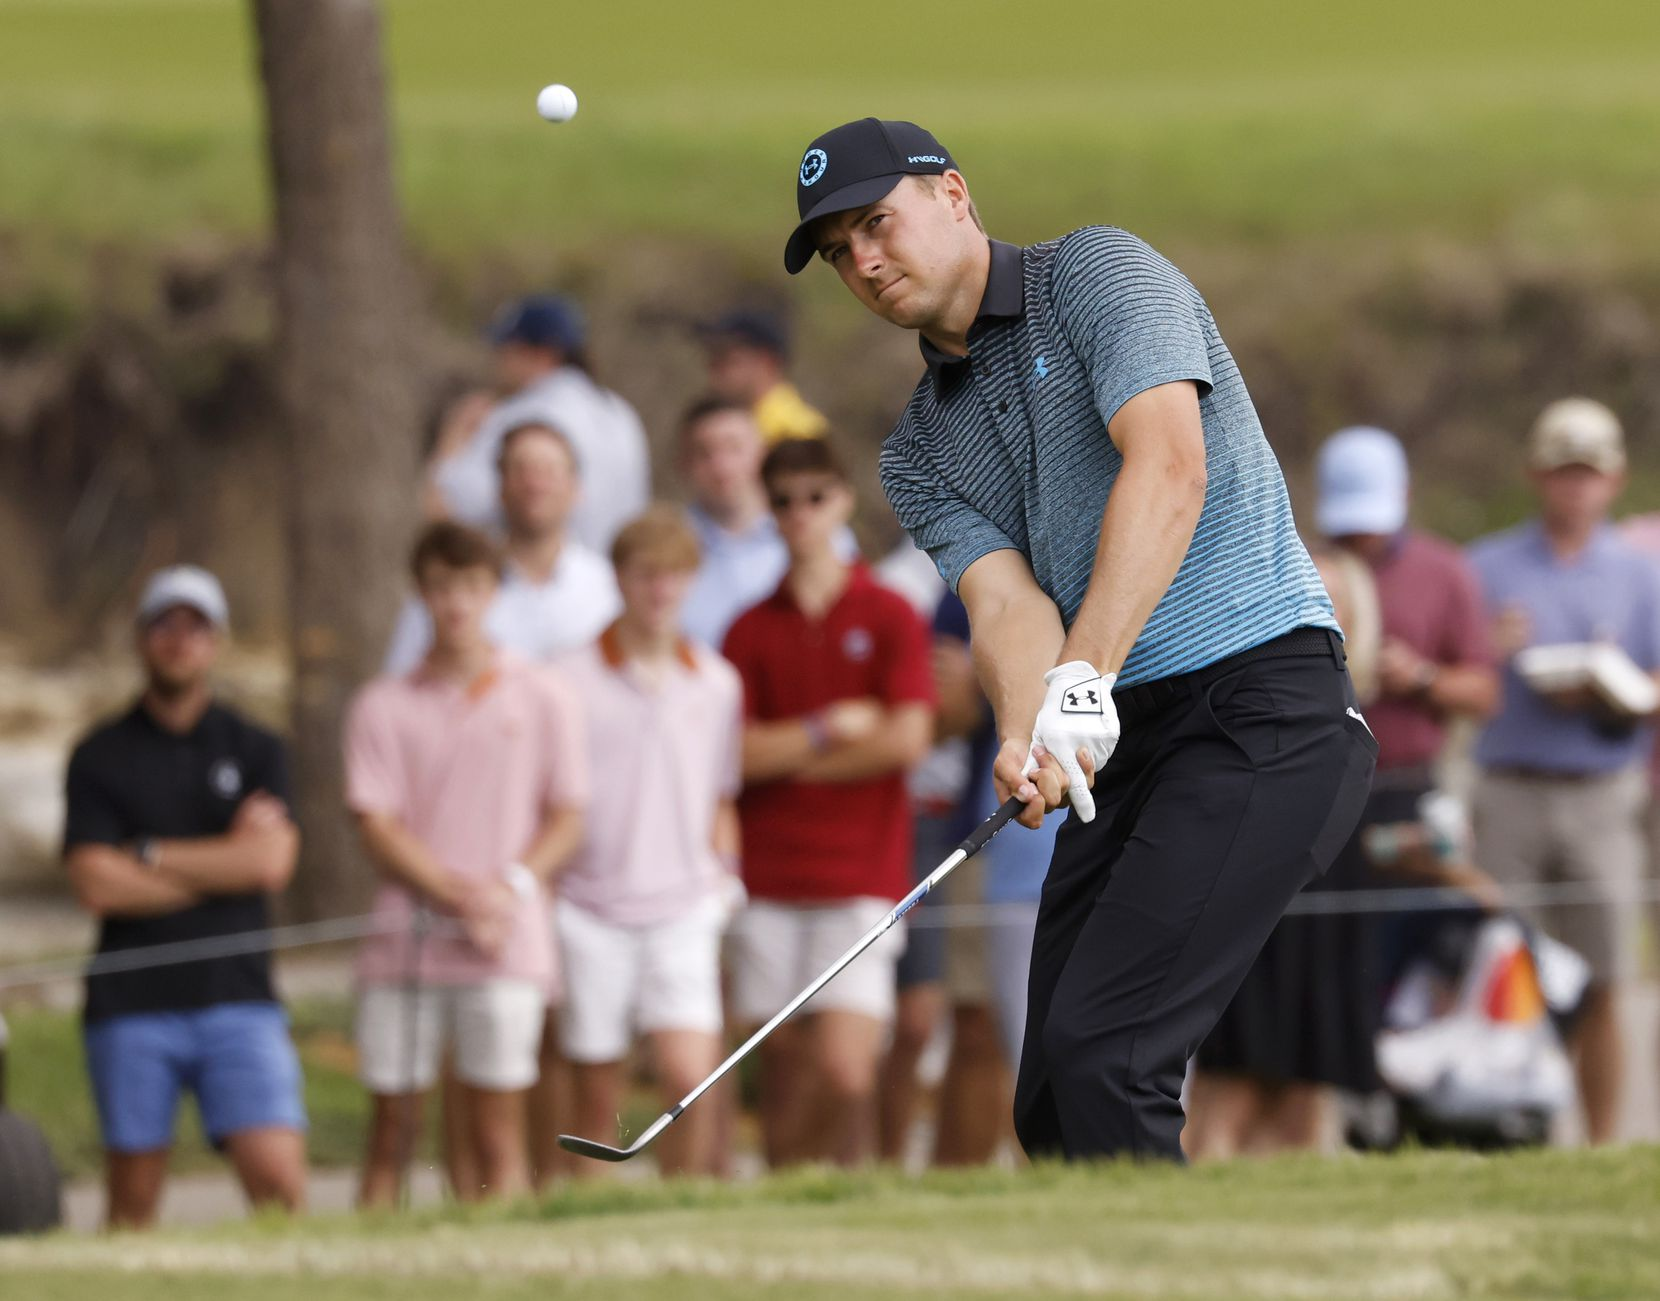 Jordan Spieth watches his ball on the 14th hole during round 3 of the AT&T Byron Nelson  at TPC Craig Ranch on Saturday, May 15, 2021 in McKinney, Texas. (Vernon Bryant/The Dallas Morning News)